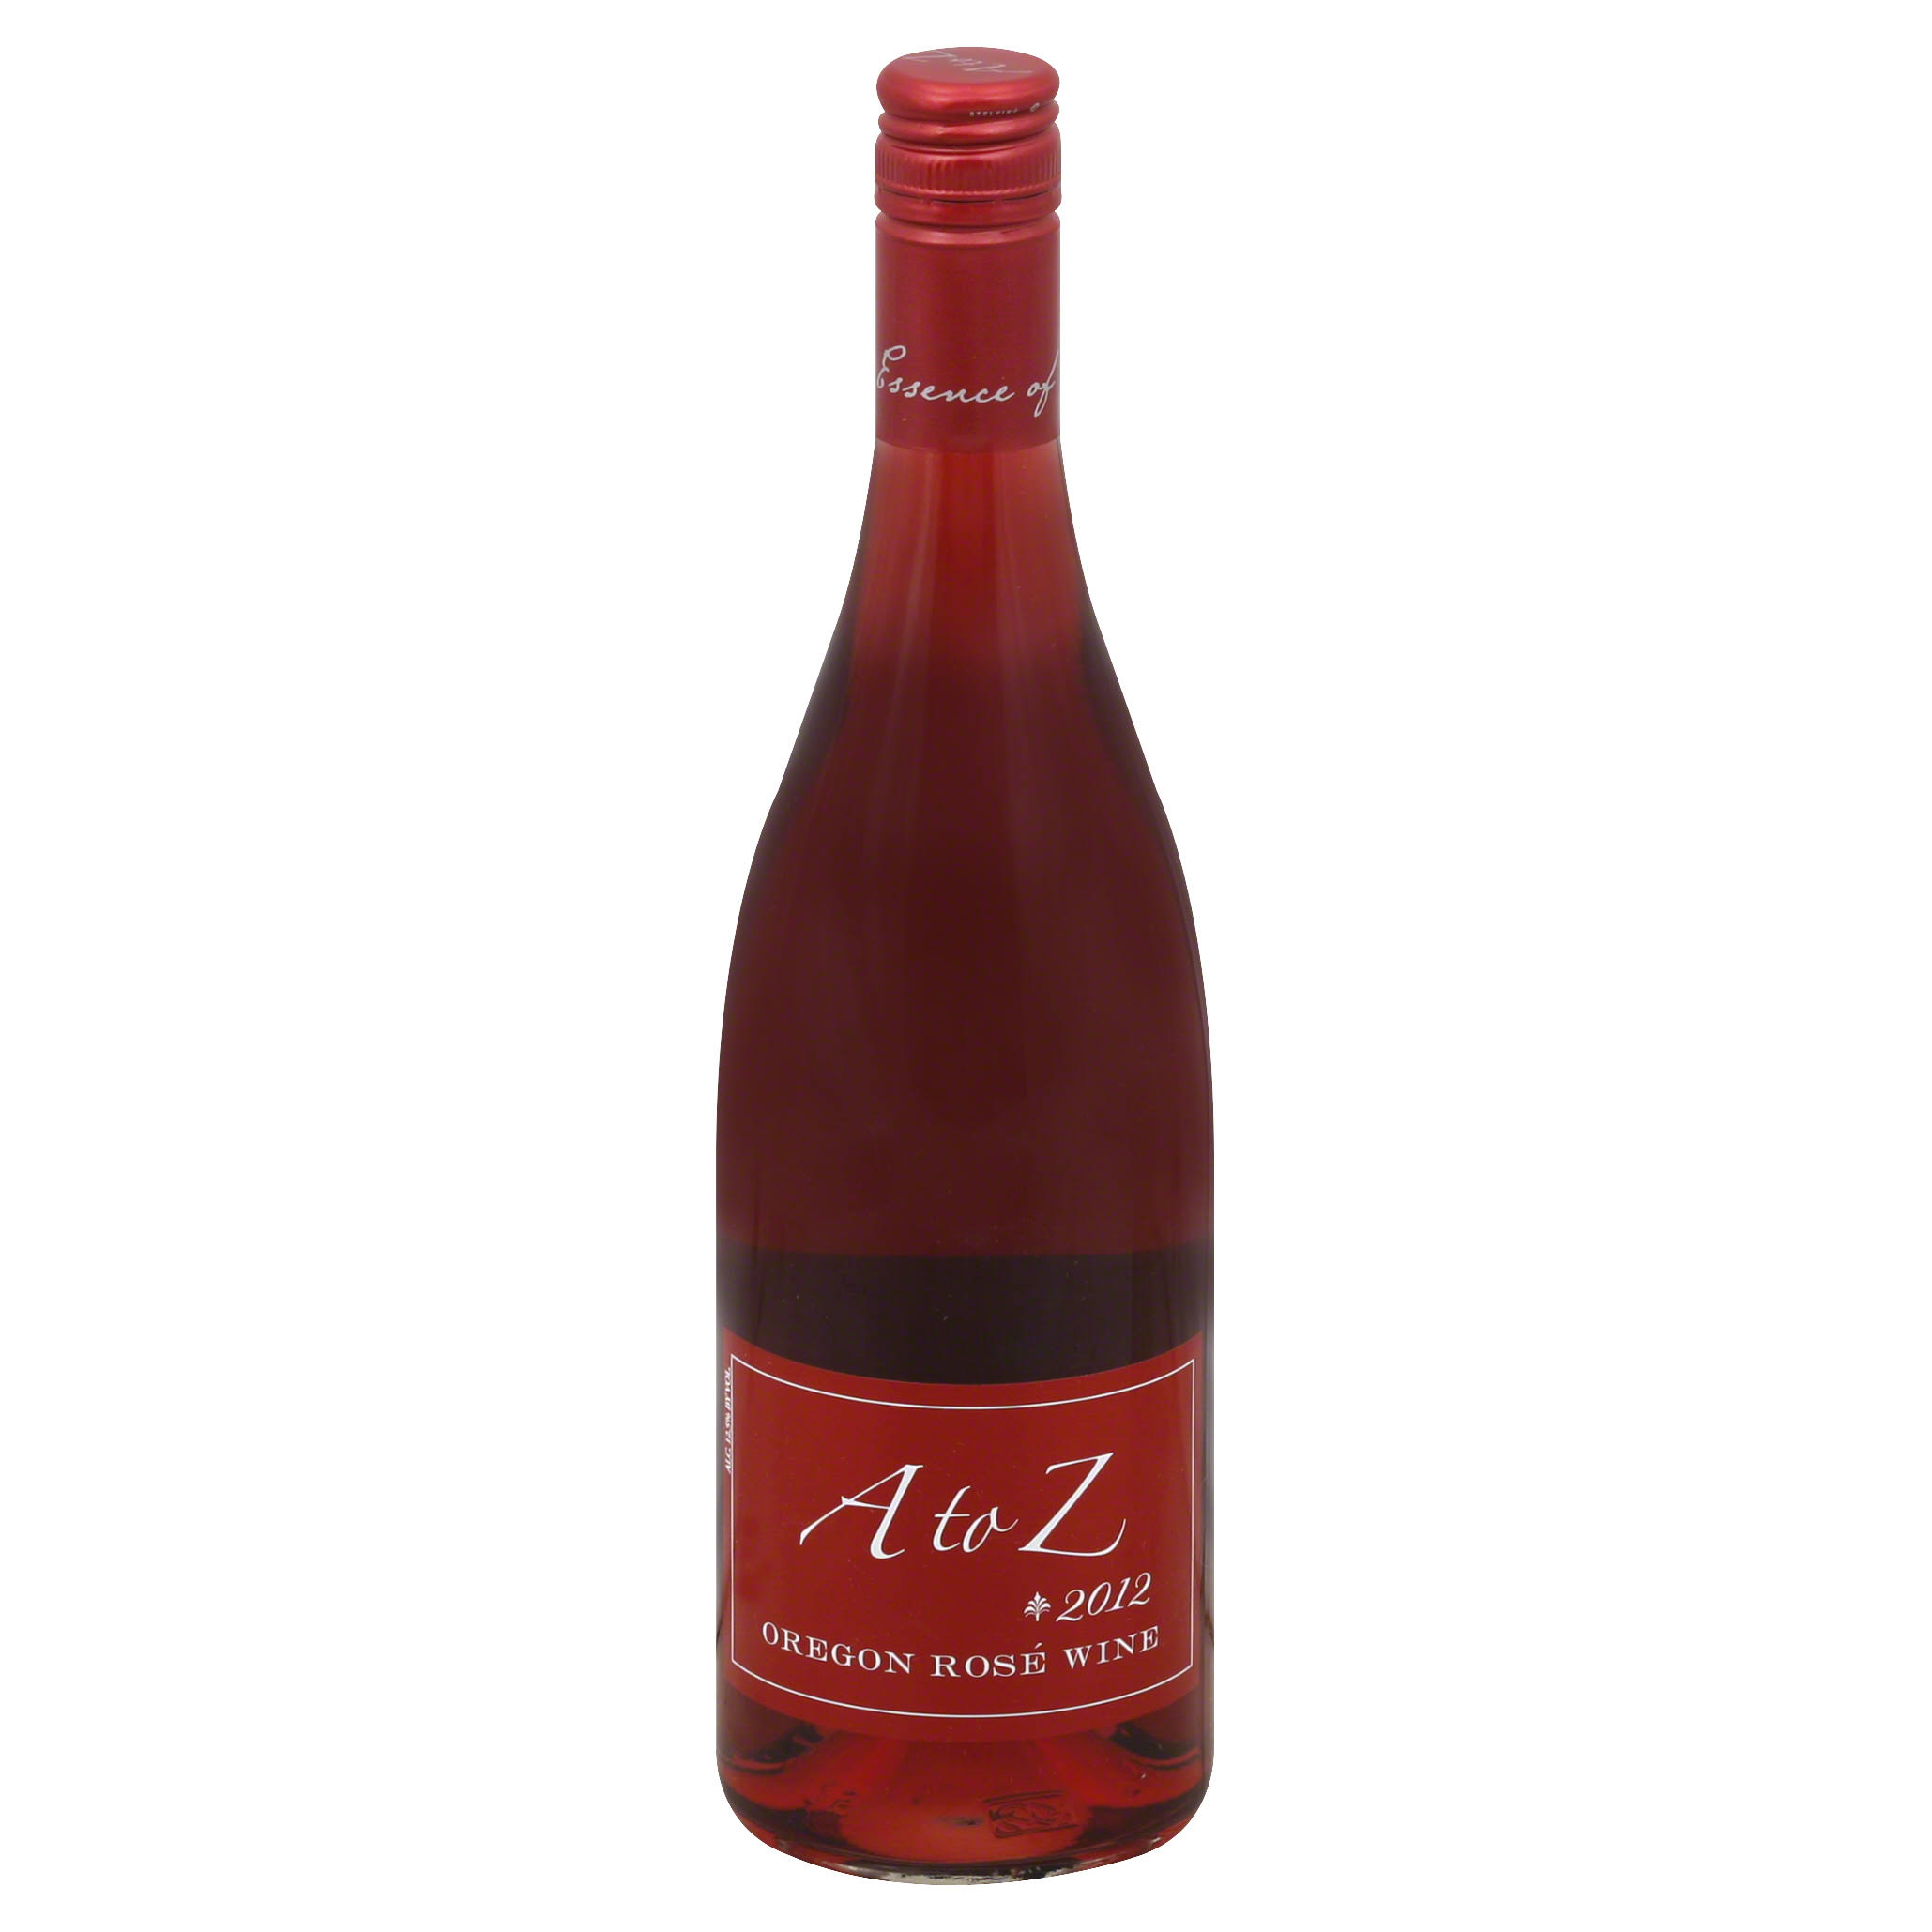 A To Z Oregon Rose Wine - 2012, 750ml